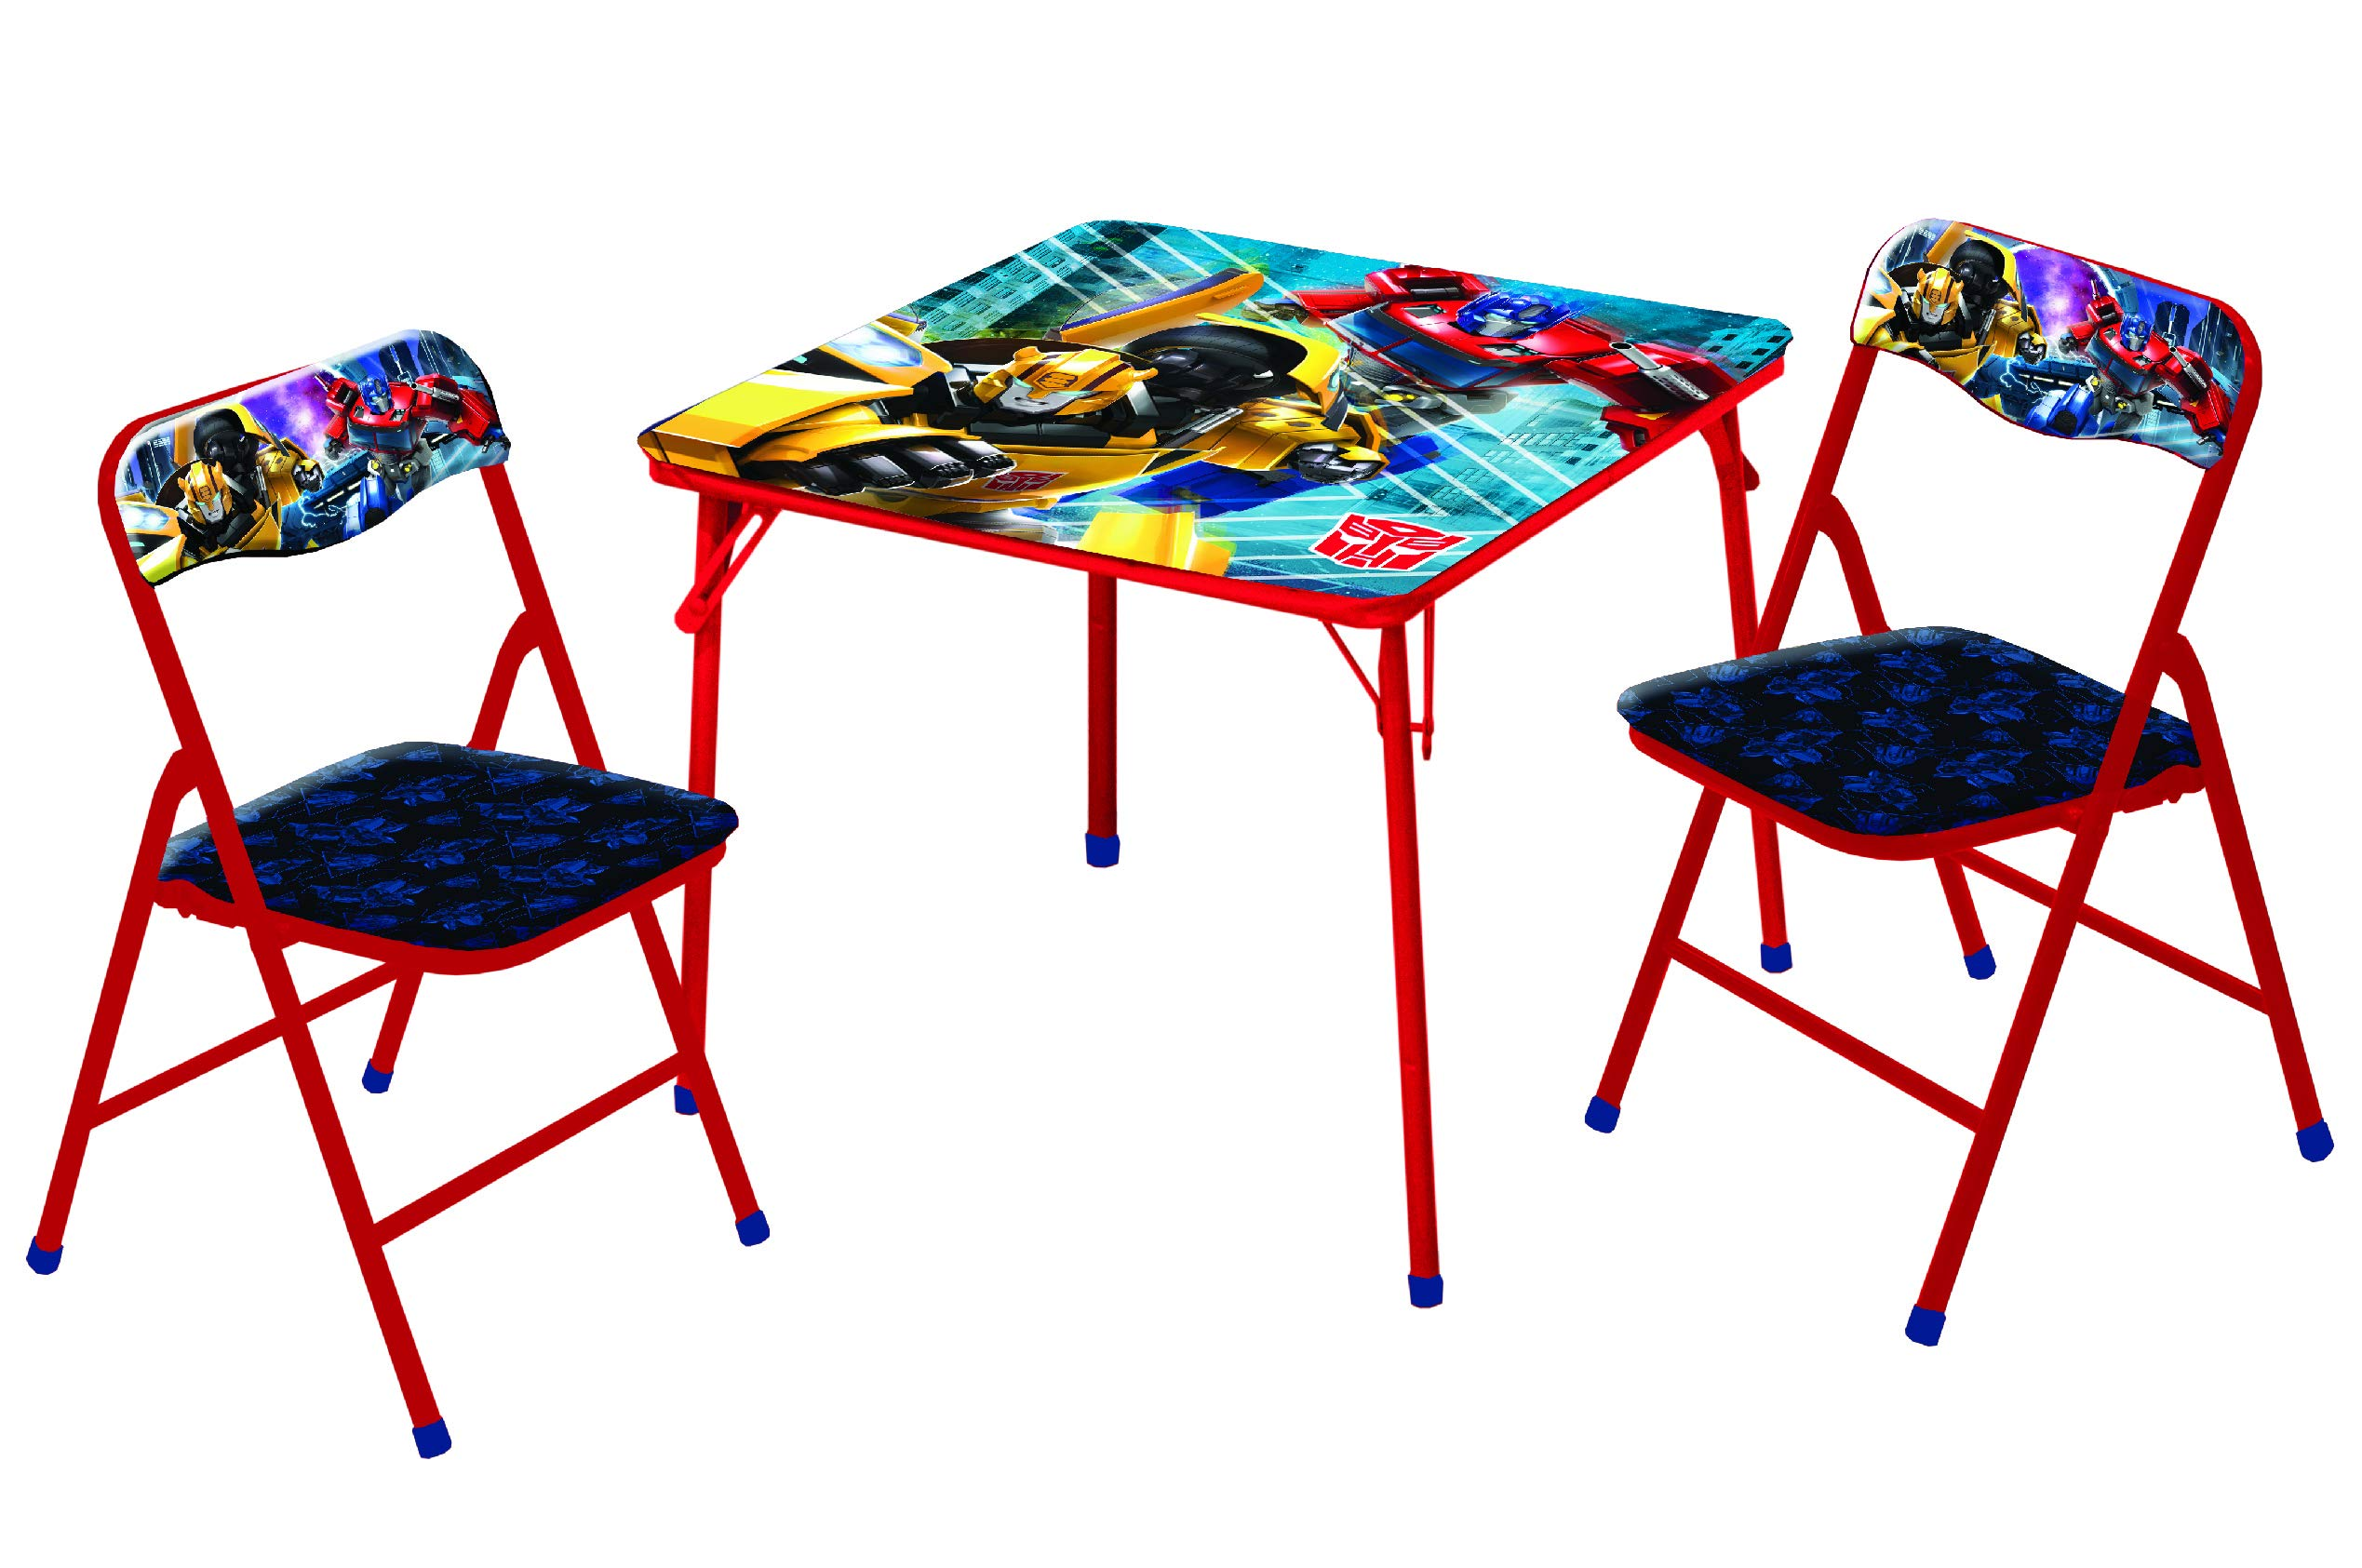 Hasbro Transformers Bumble Bee 3 Pc Table & Chair Set, Yellow by Hasbro